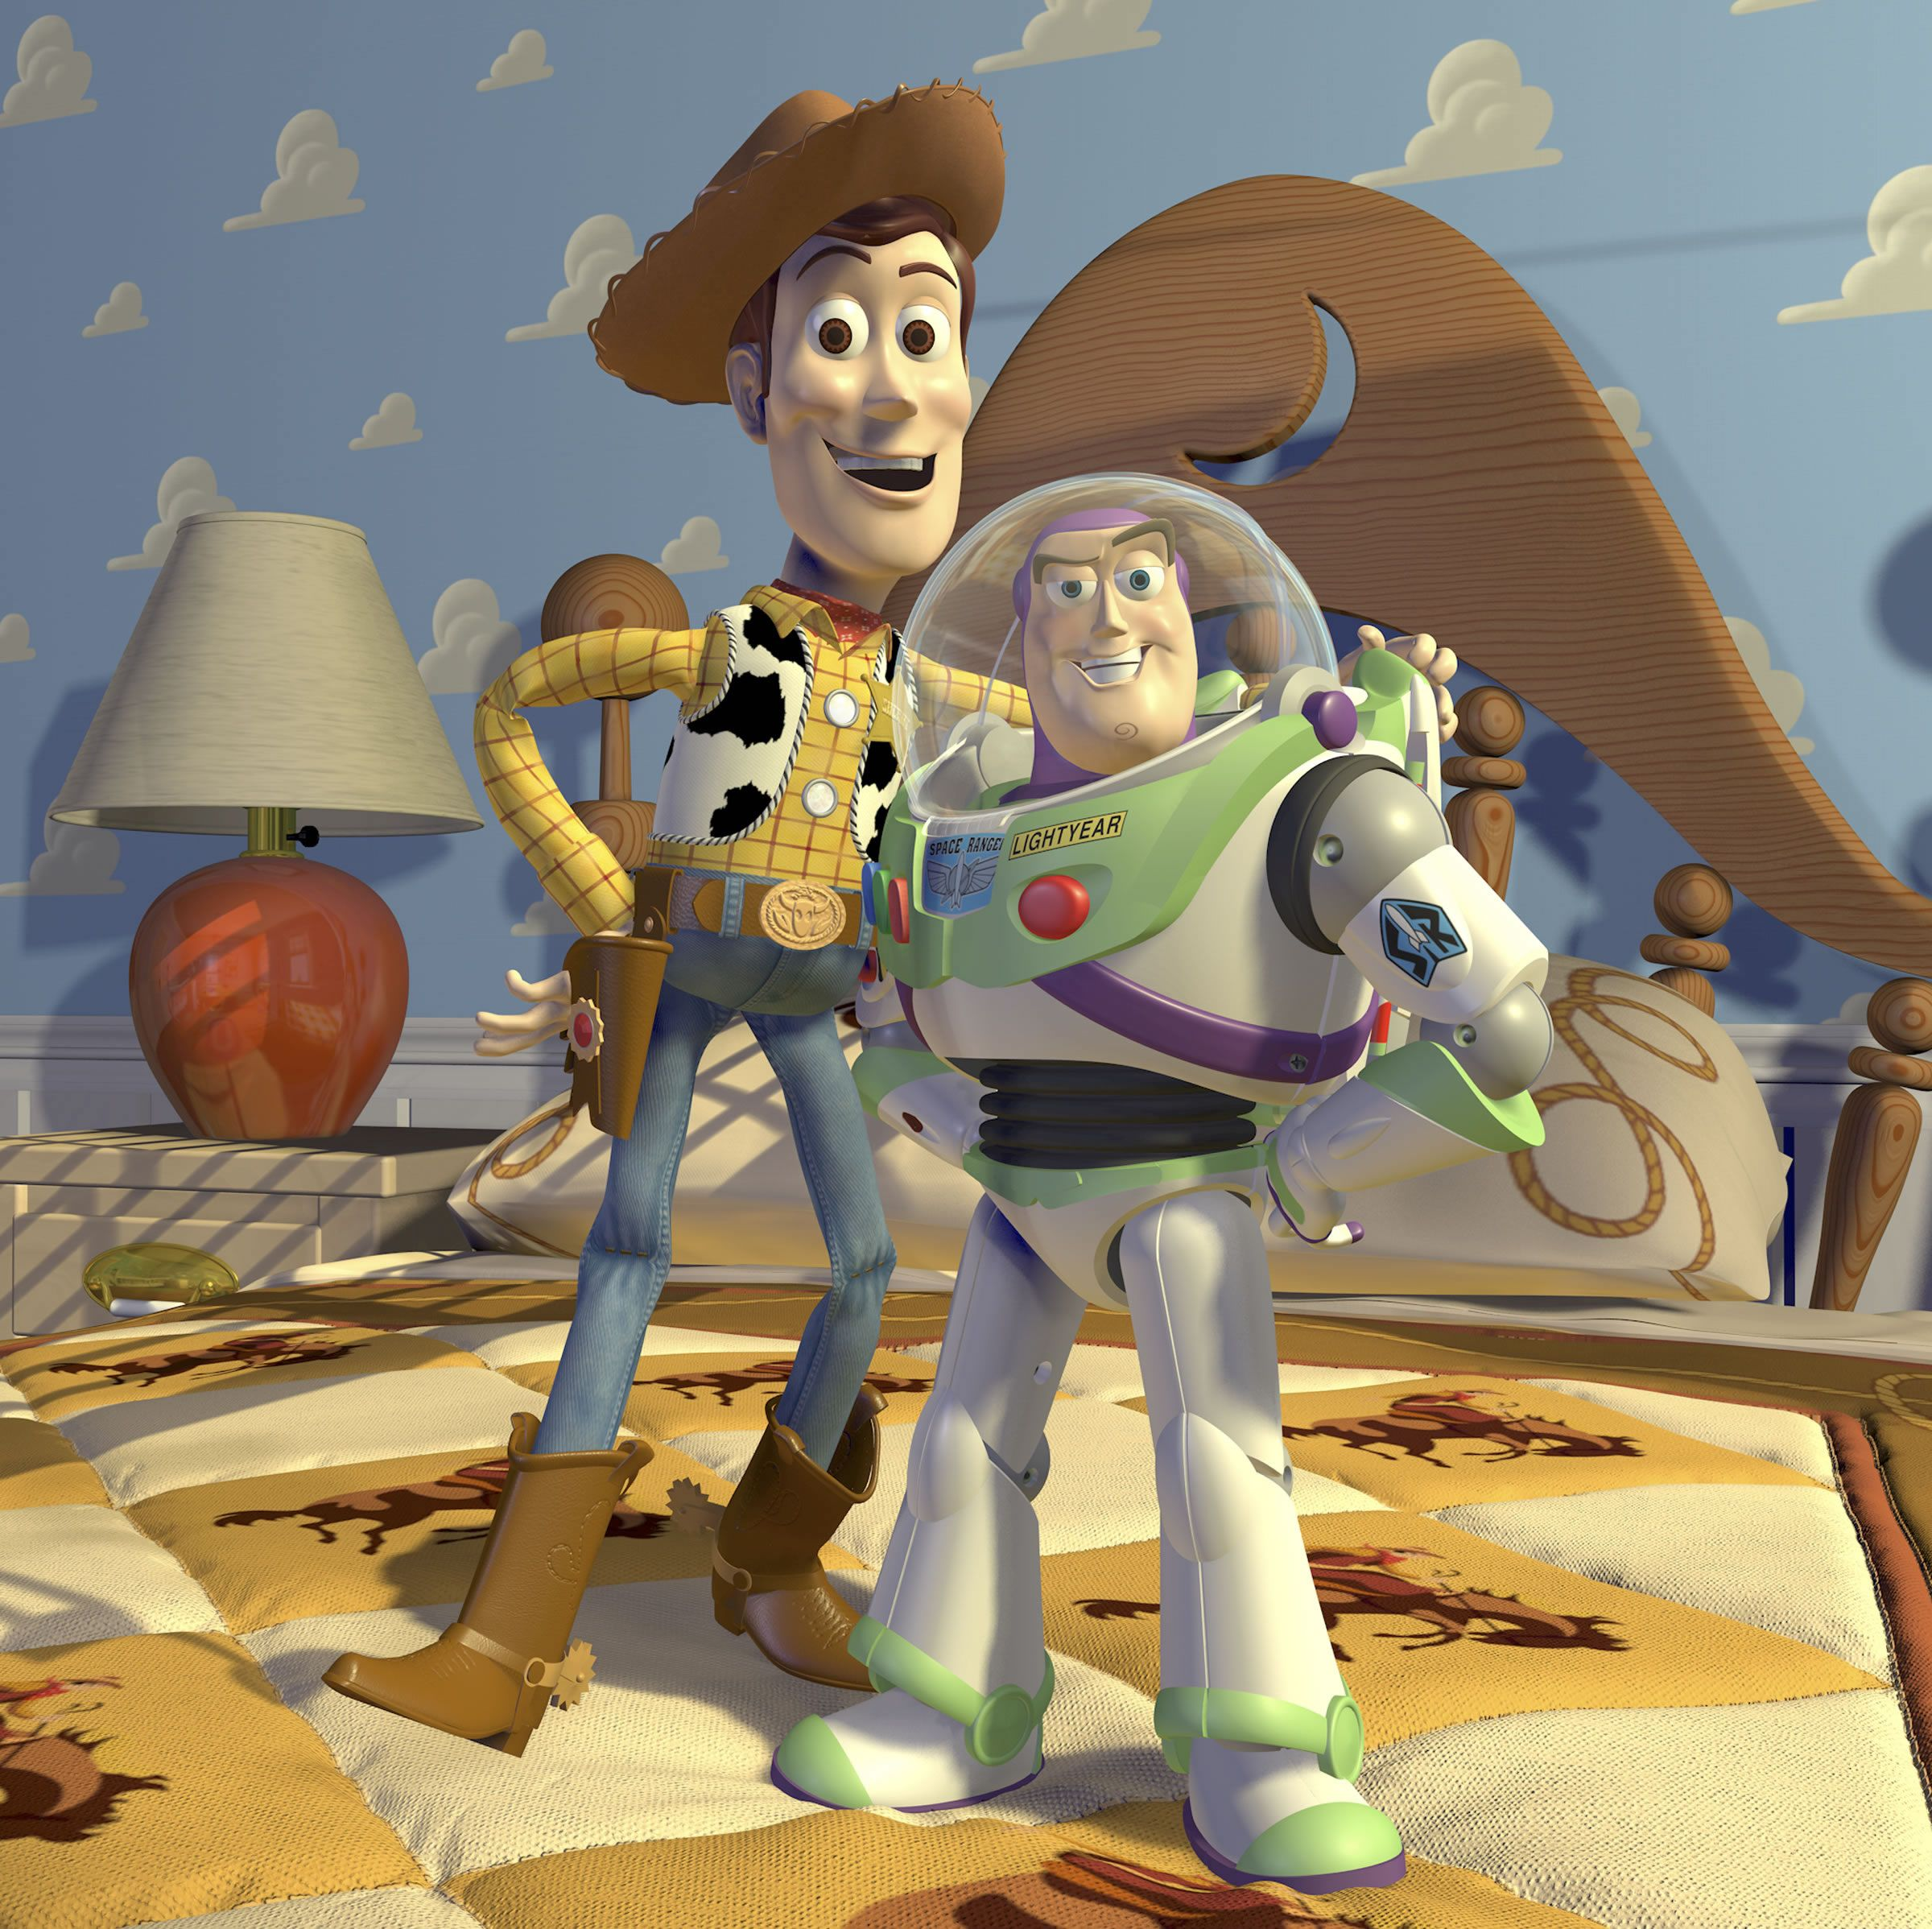 http://www.collider.com/uploads/imageGallery/Toy_Story_3/toy_story_3_movie_image_disney_pixar_june_18__2010_l.jpg